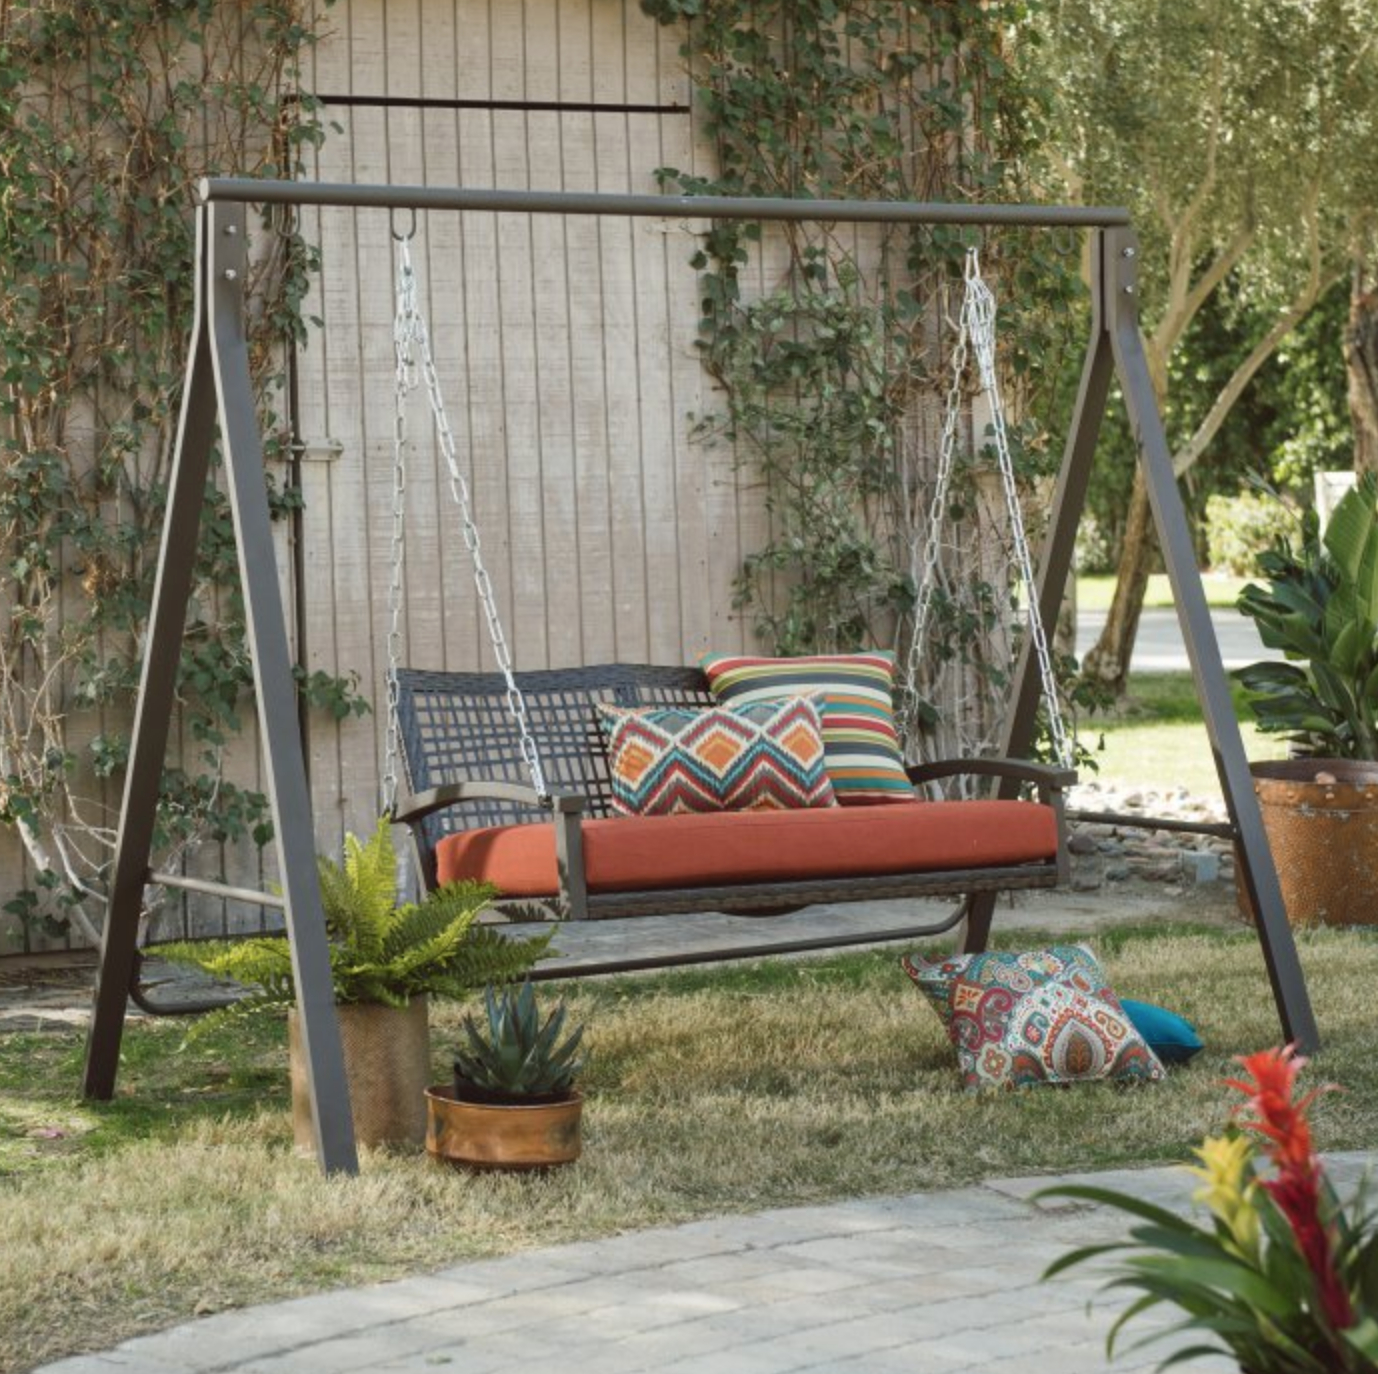 """Favorite Patio Metal Swing Stand A Frame Steel For 4"""" 5"""" Swings Lawn Inside Patio Porch Swings With Stand (Gallery 3 of 30)"""